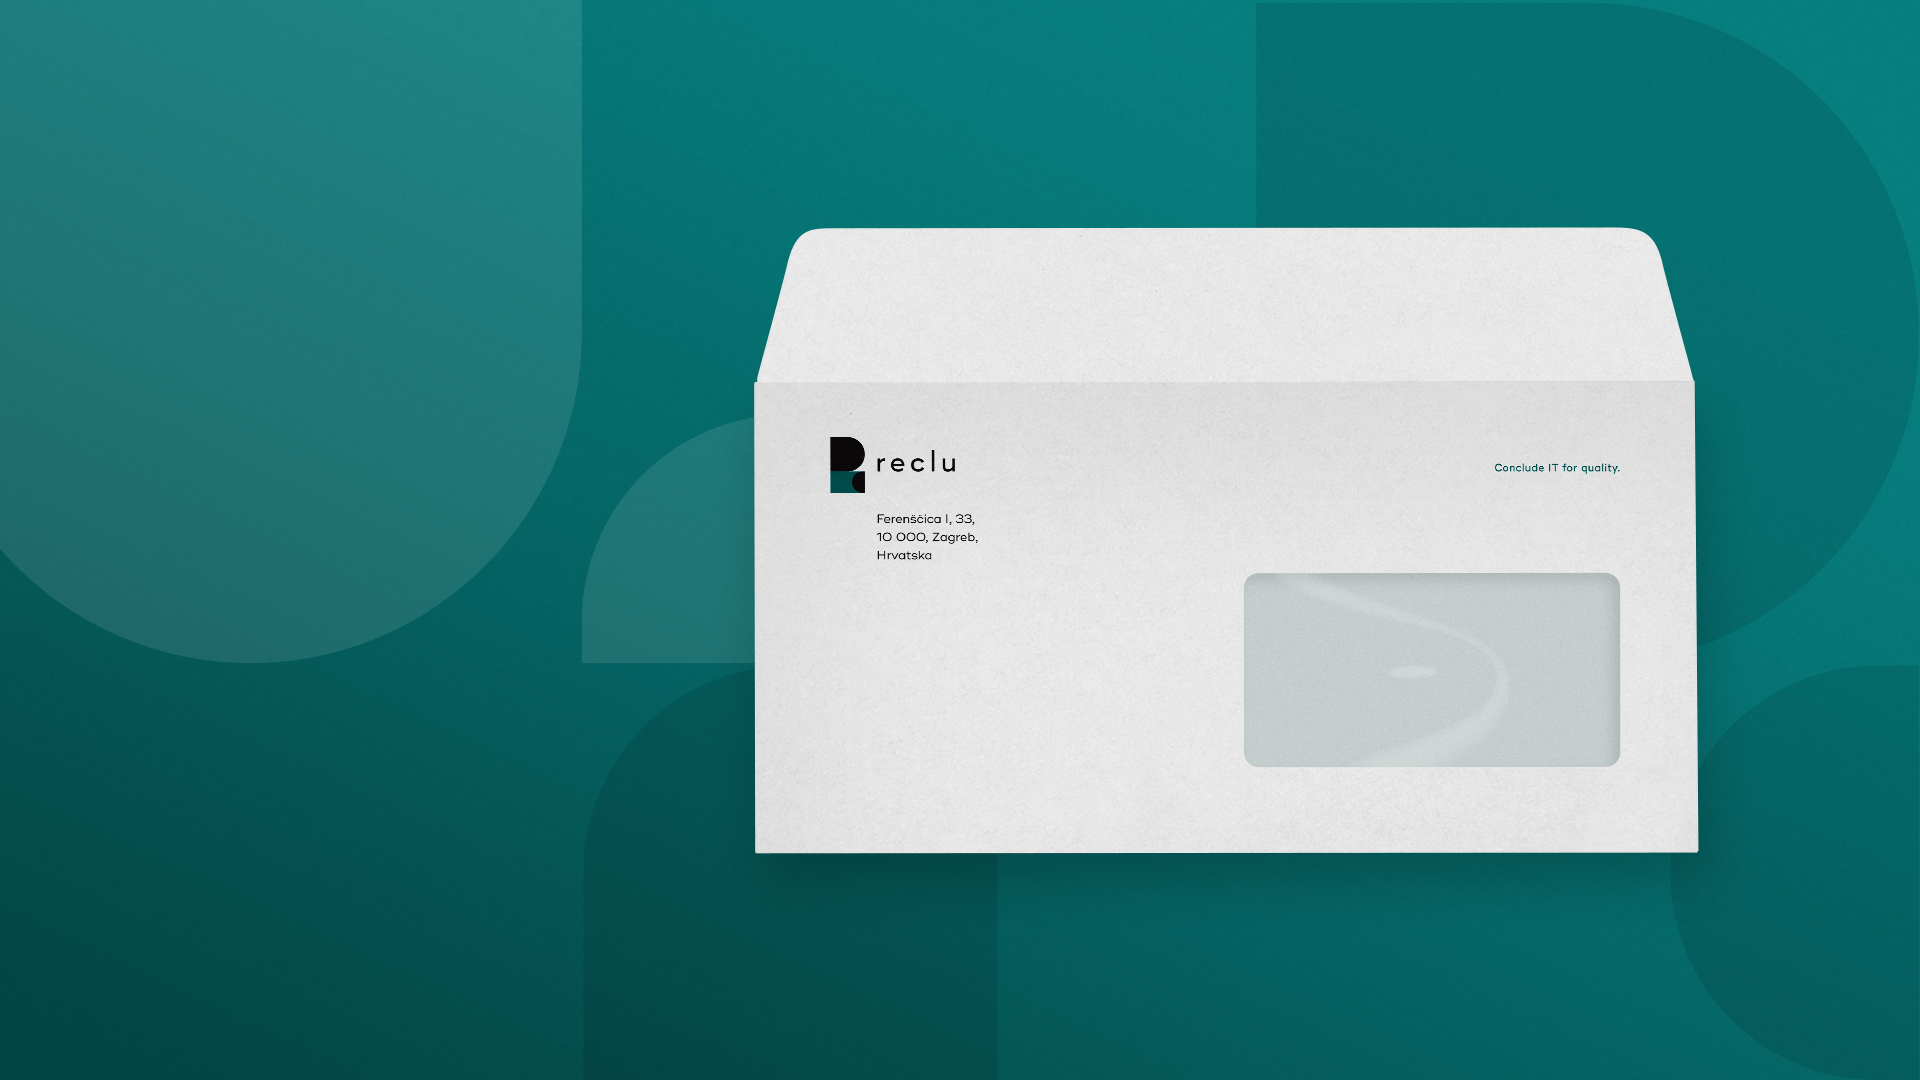 Reclu-Visual-Identity-by-Emtisquare-7